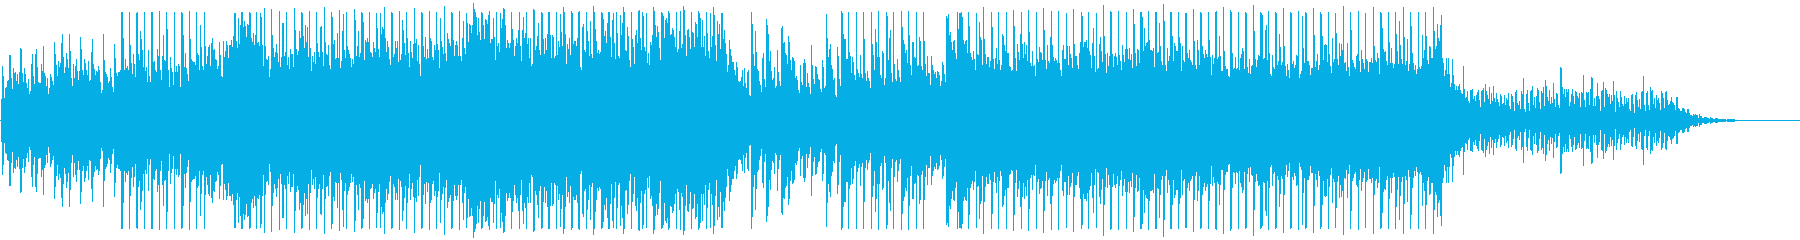 BGM with a beautiful piano's reproduced waveform